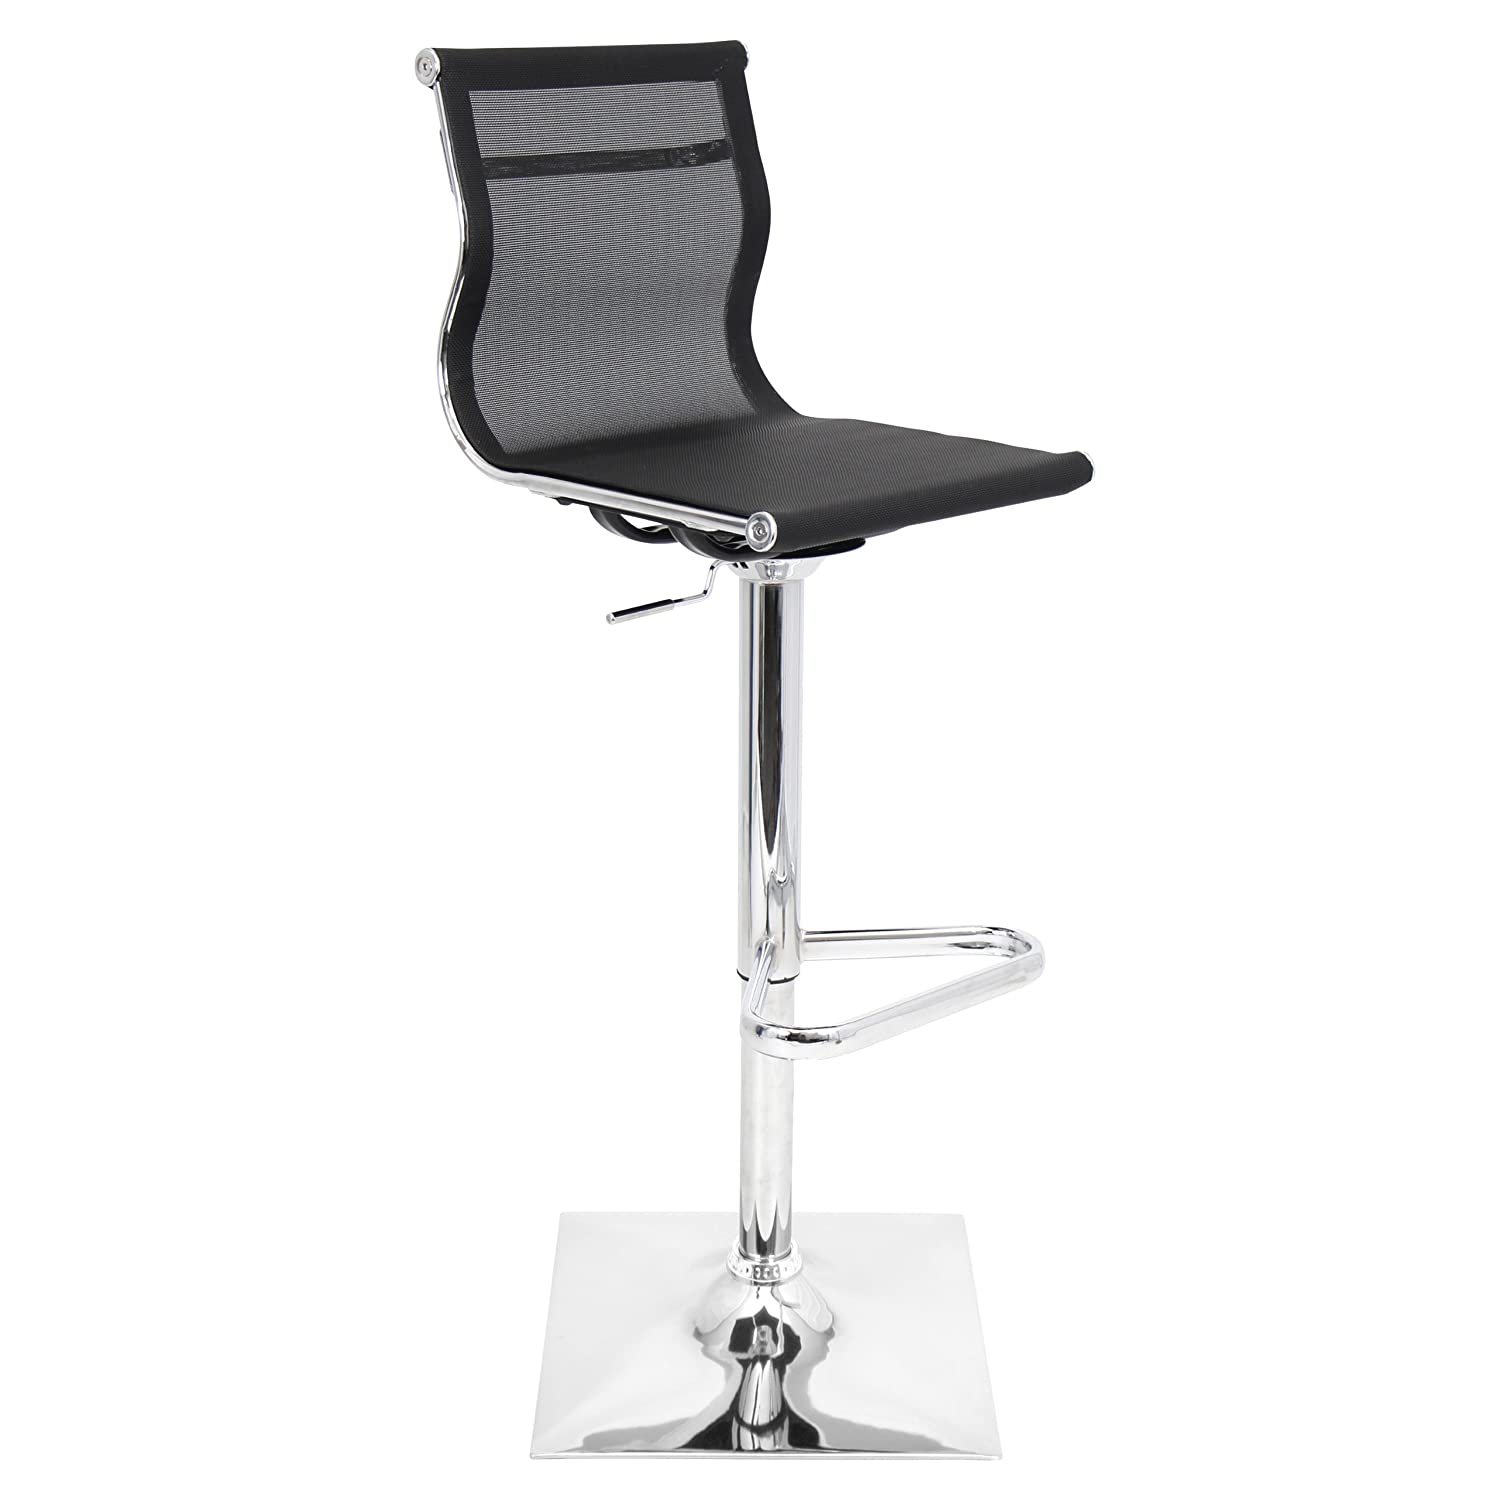 LumiSource BS-TW-MIRAGE BK Contemporary Height Adjustable Barstool in Black with Swivel